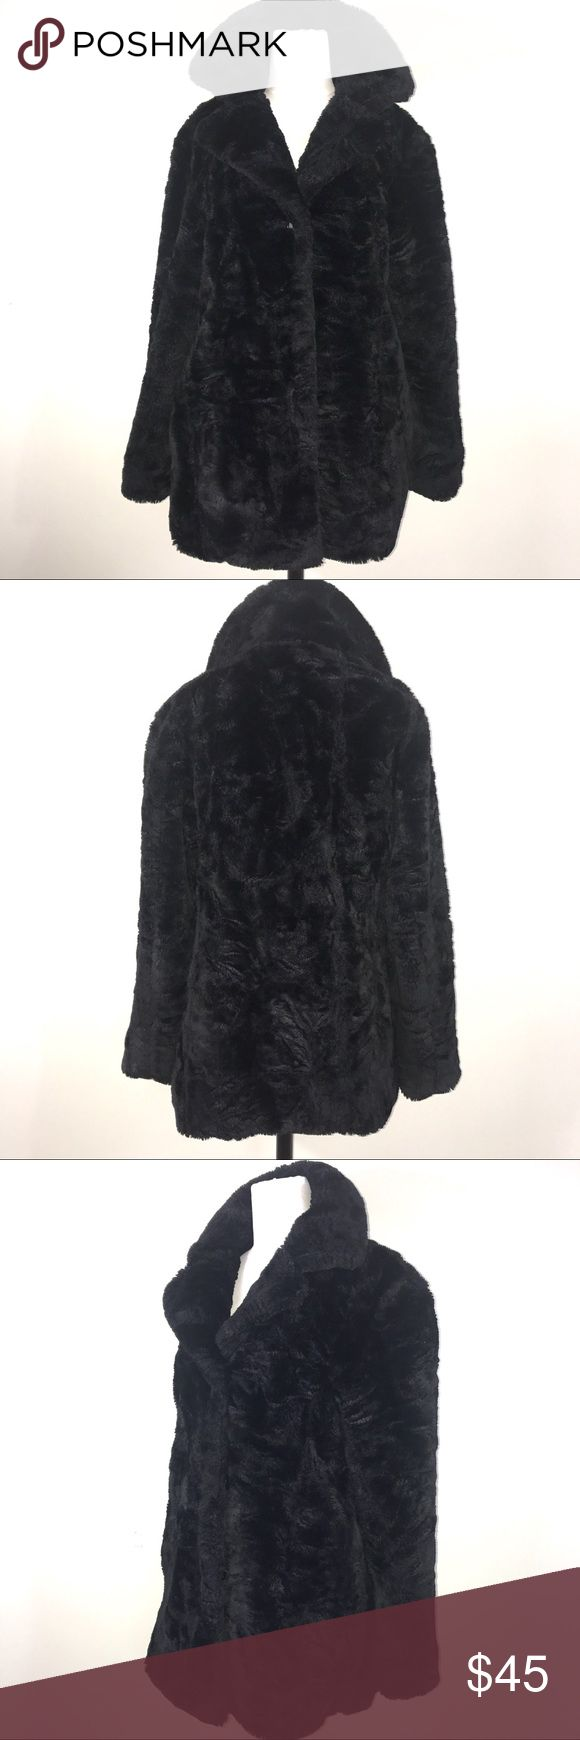 """United Colors of Benetton Faux Fur Coat Size Small This United Colors of Benetton Faux fur coat is in beautiful condition. It is a heavy black fabric and lined. It is a size small and vintage in age, as you can see from the tag. Green tag has come undone on one side. Has 3 buttons and 2 hand pockets on the sides. Length is approximately 29"""", bust 21"""". United Colors Of Benetton Jackets & Coats Pea Coats"""